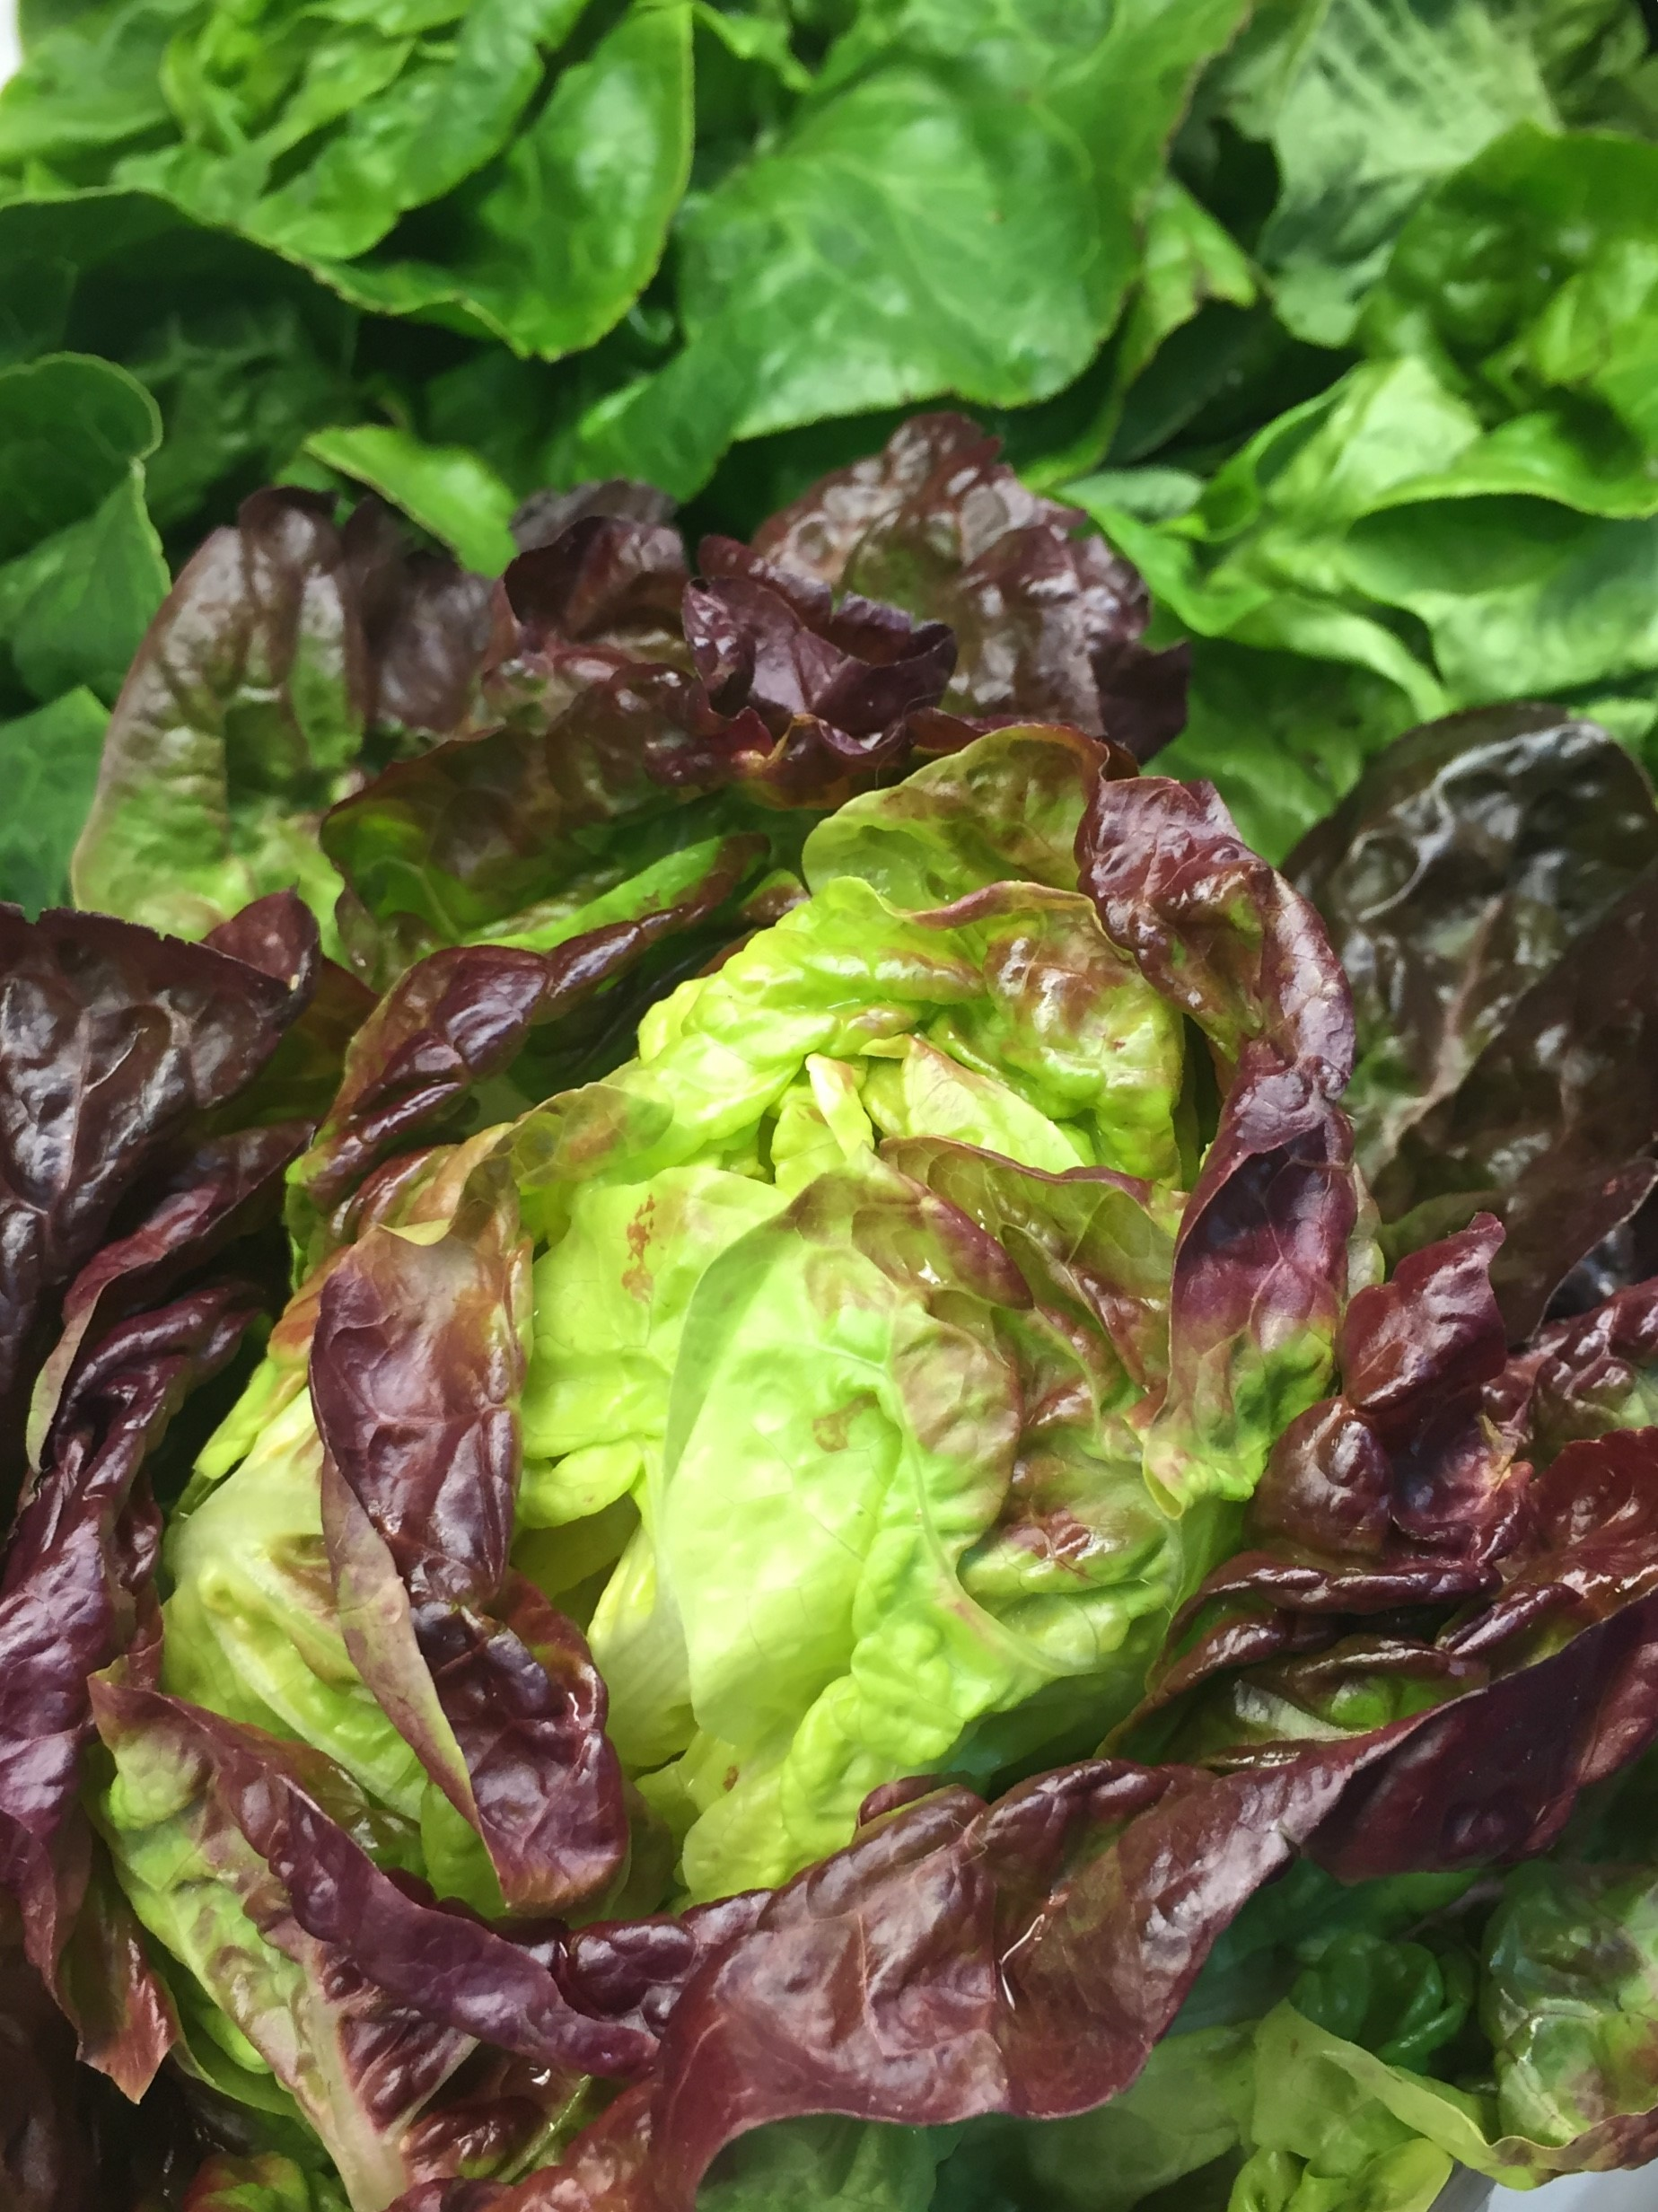 http://blueskyorganicfarms.com/wp-content/uploads/2018/09/Red-Butter-Lettuce.jpg